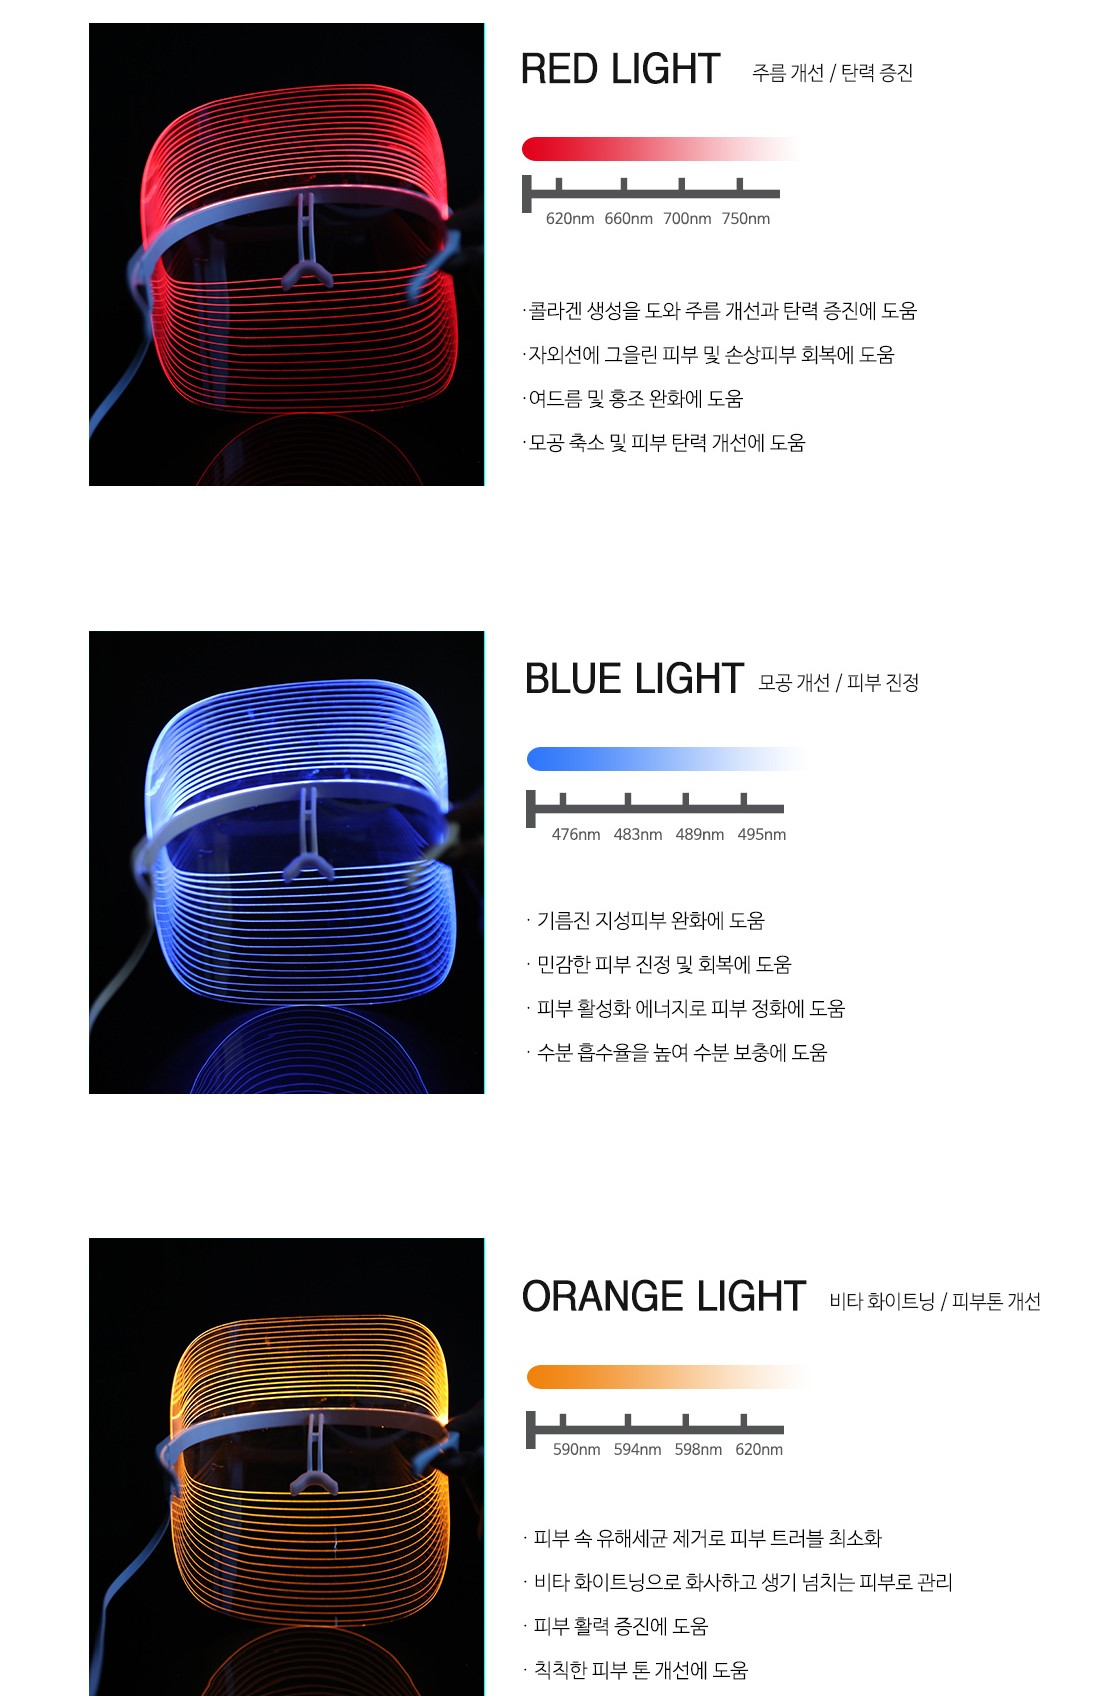 mat-na-den-led-anh-sang-tri-lieu-va-cham-soc-da-wellderma-led-light-therapy-genie-face-mask